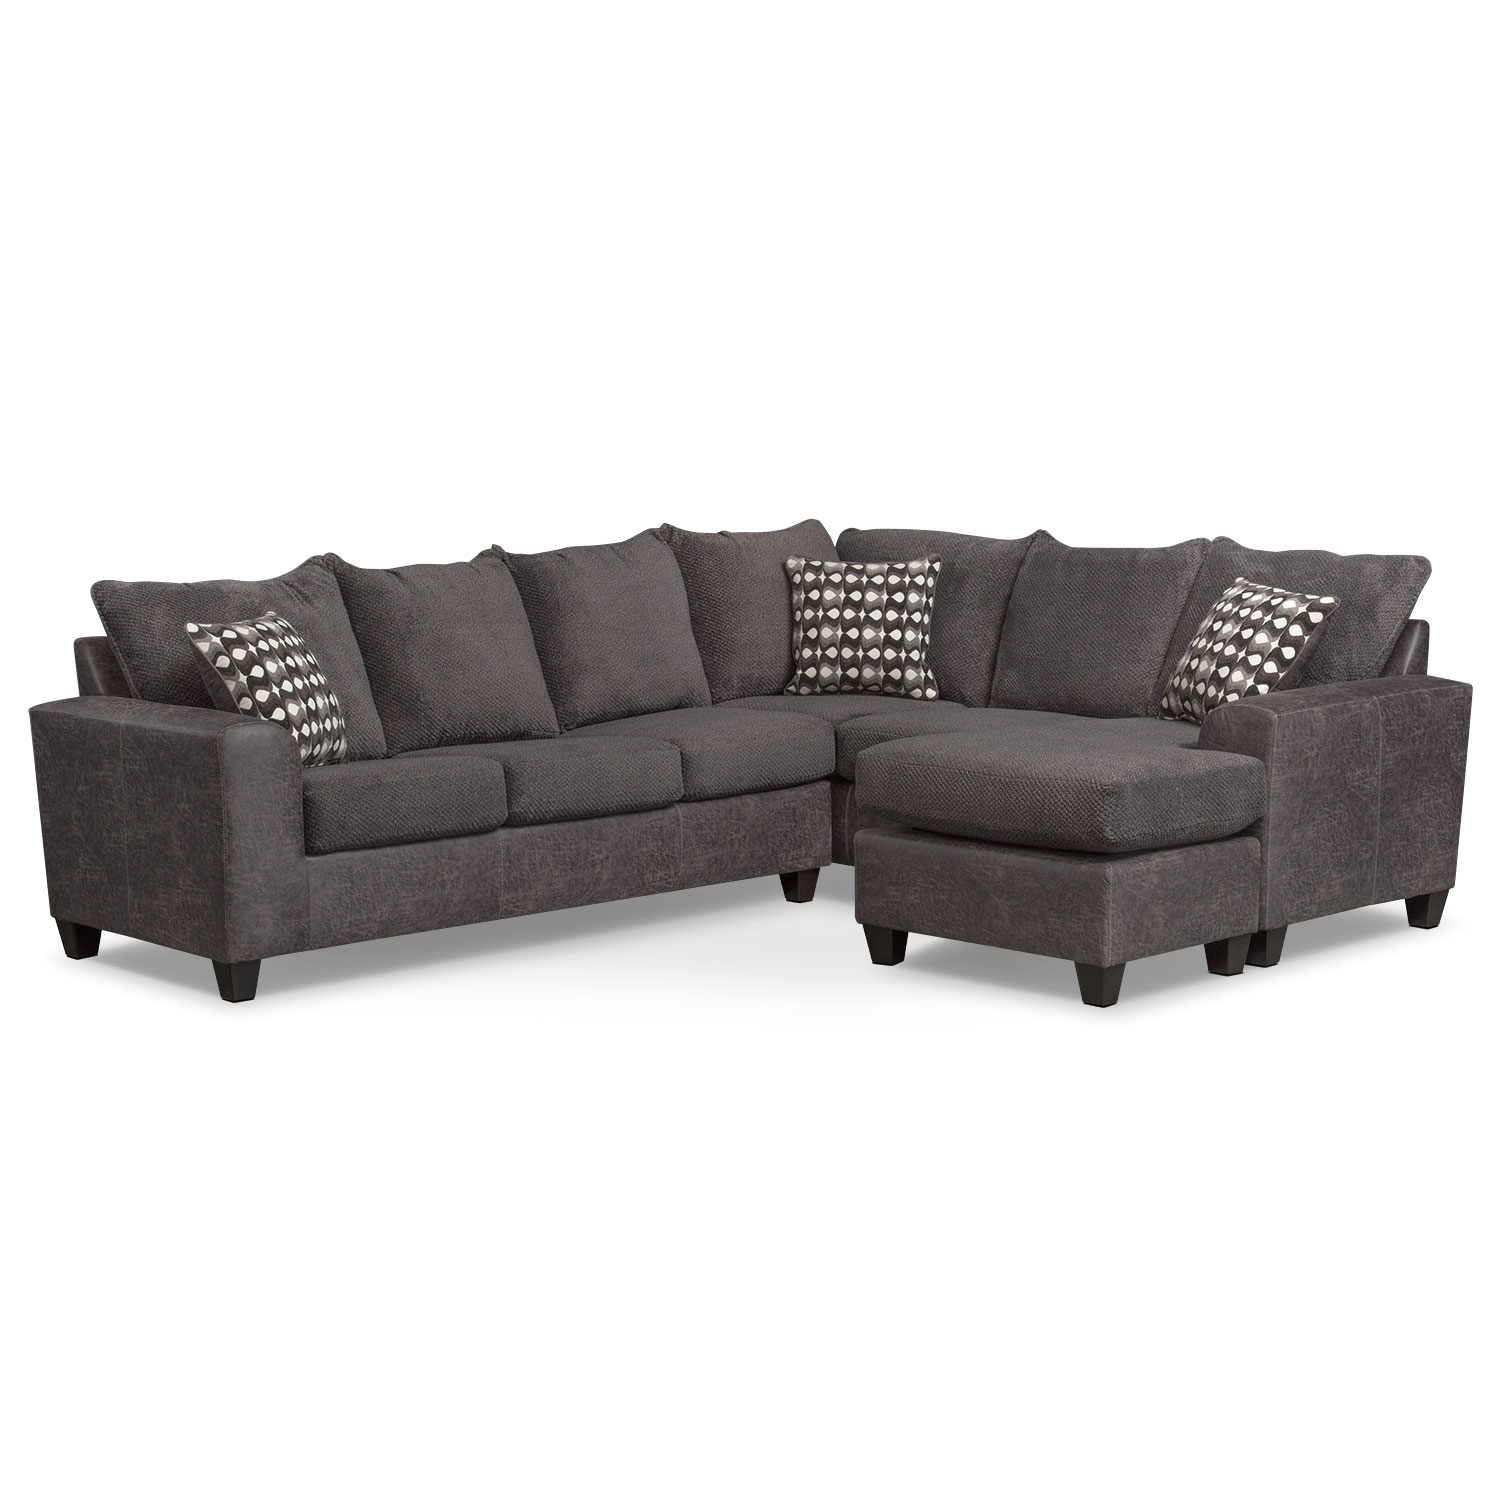 Brando 3 Piece Sectional With Modular Chaise – Smoke | American With Aurora 2 Piece Sectionals (Image 11 of 25)